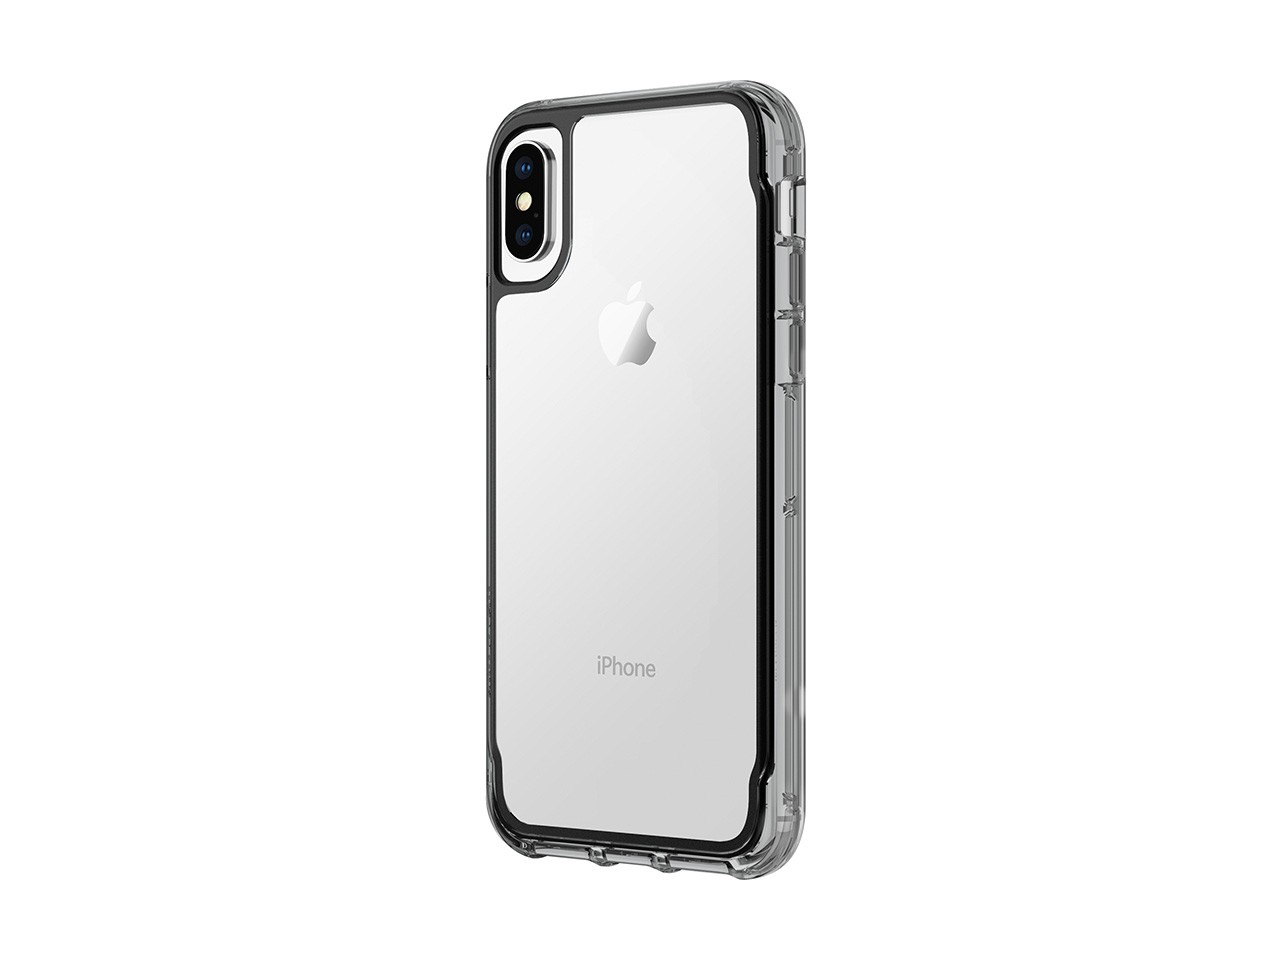 Griffin Survivor - Back cover for mobile phone - polycarbonate, thermoplastic polyurethane - clear,